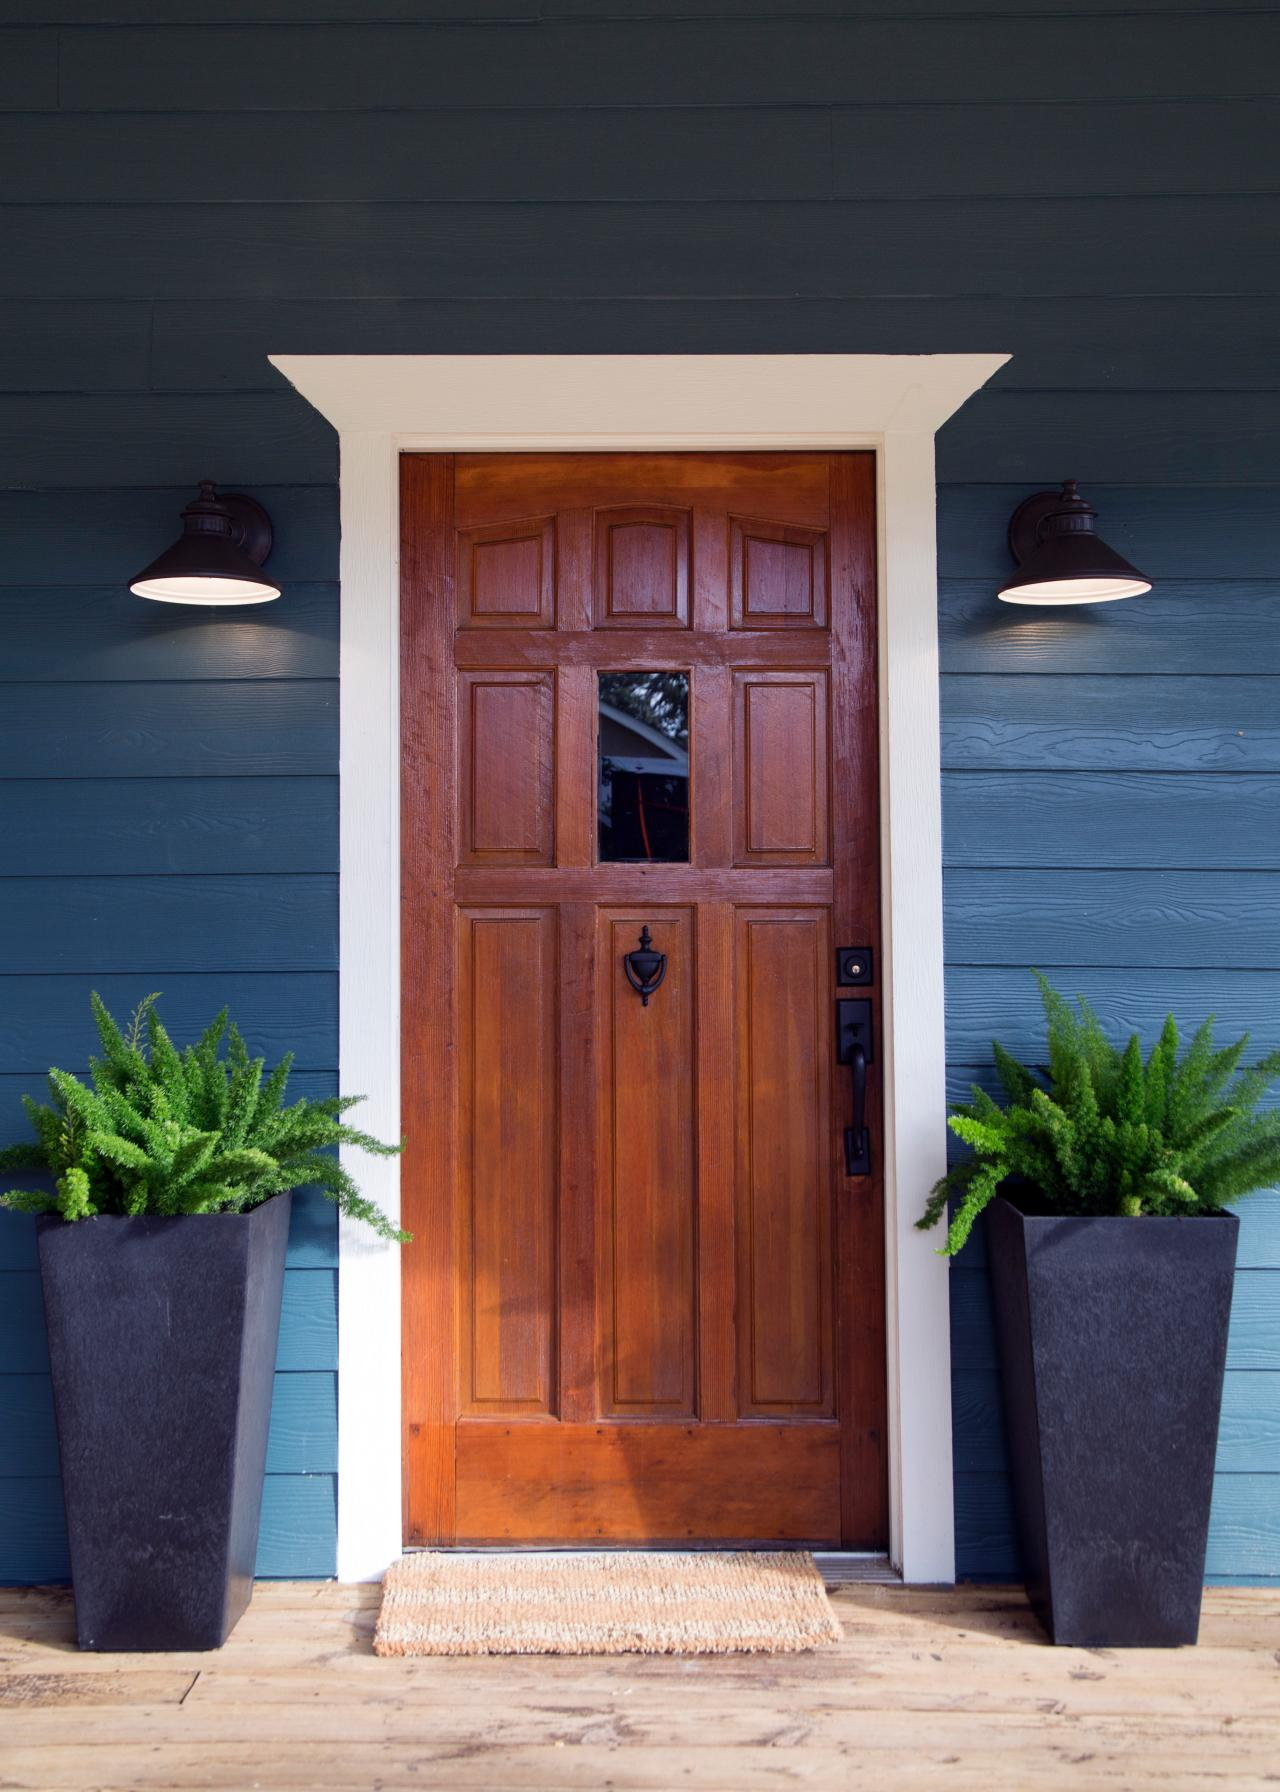 1792 #A34F28 Front Exterior After The Beautifully Refurbished Wooden Front Door  image Farmhouse Front Doors 40331280